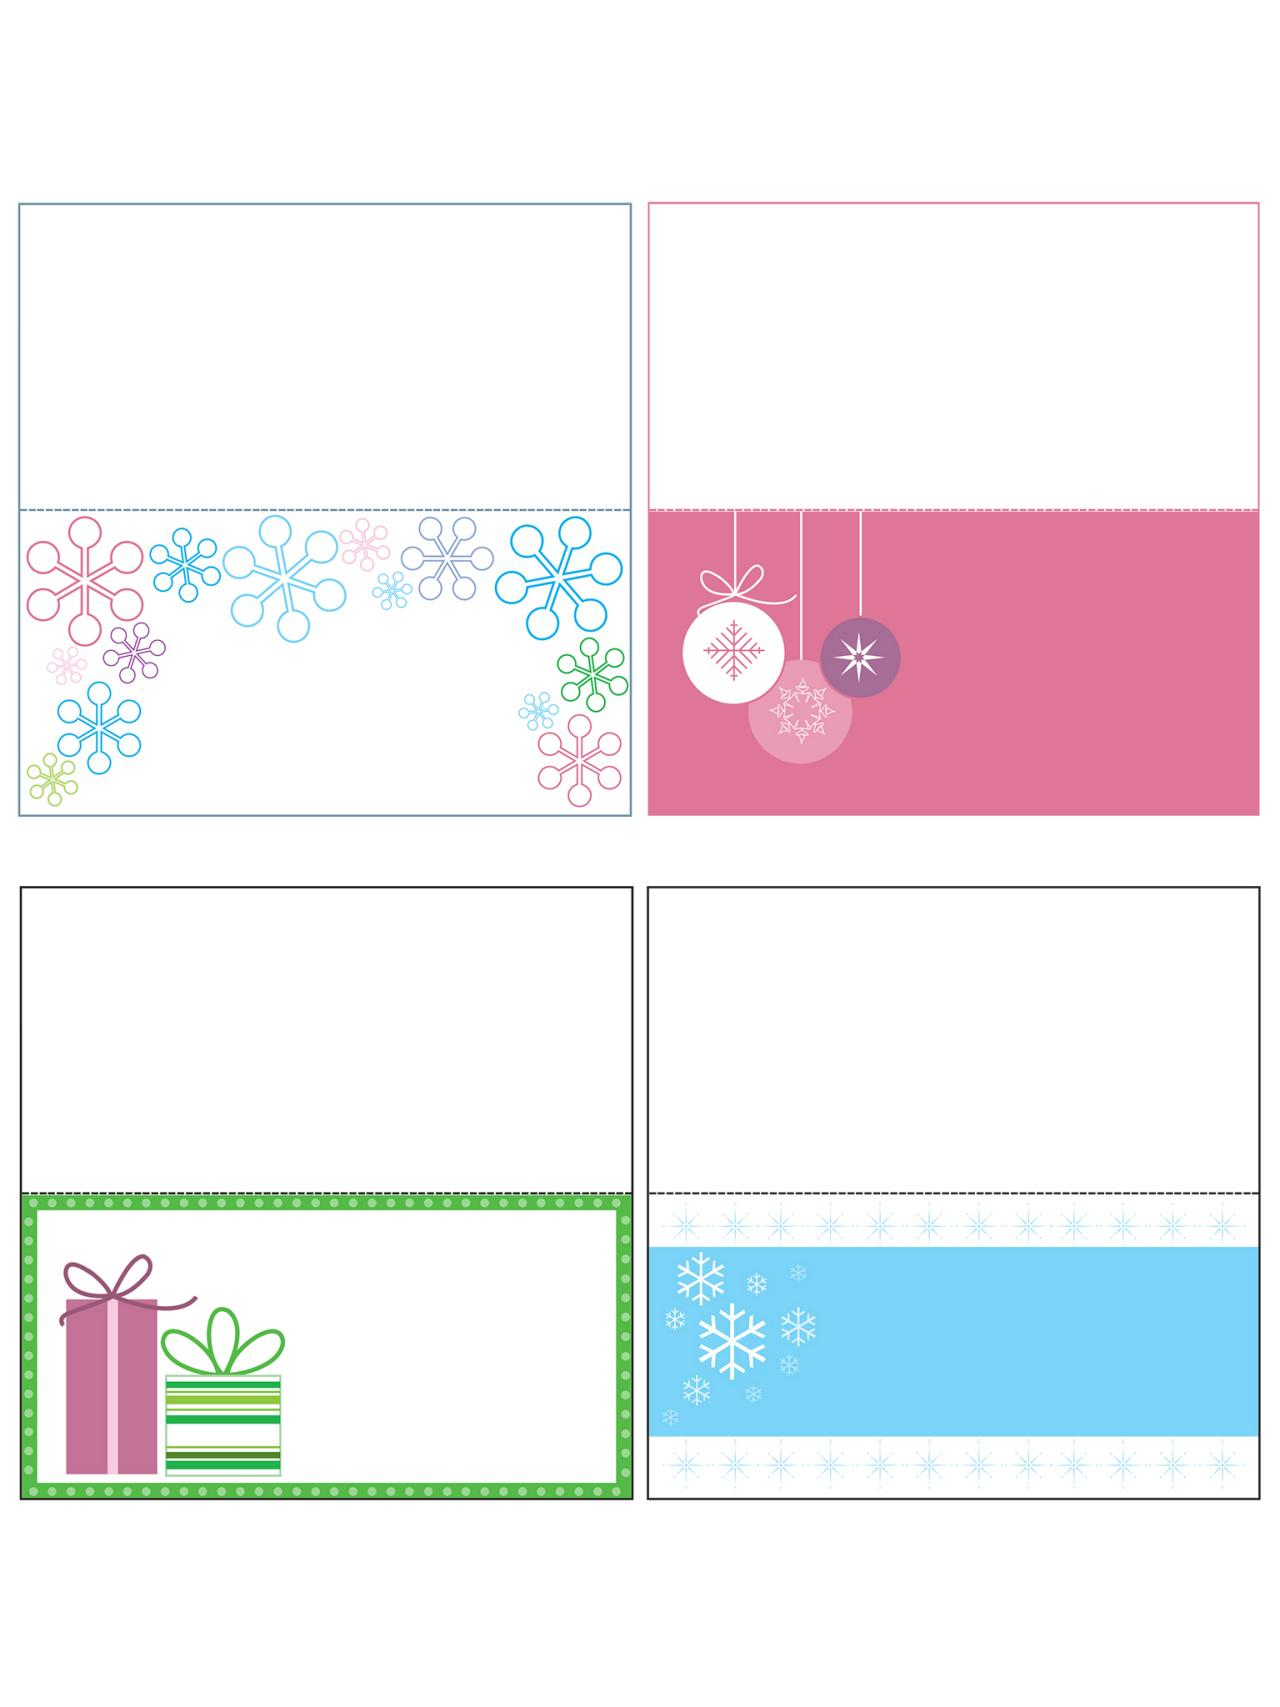 009 Template For Gift Tags ~ Ulyssesroom - Free Online Gift Tags Printable